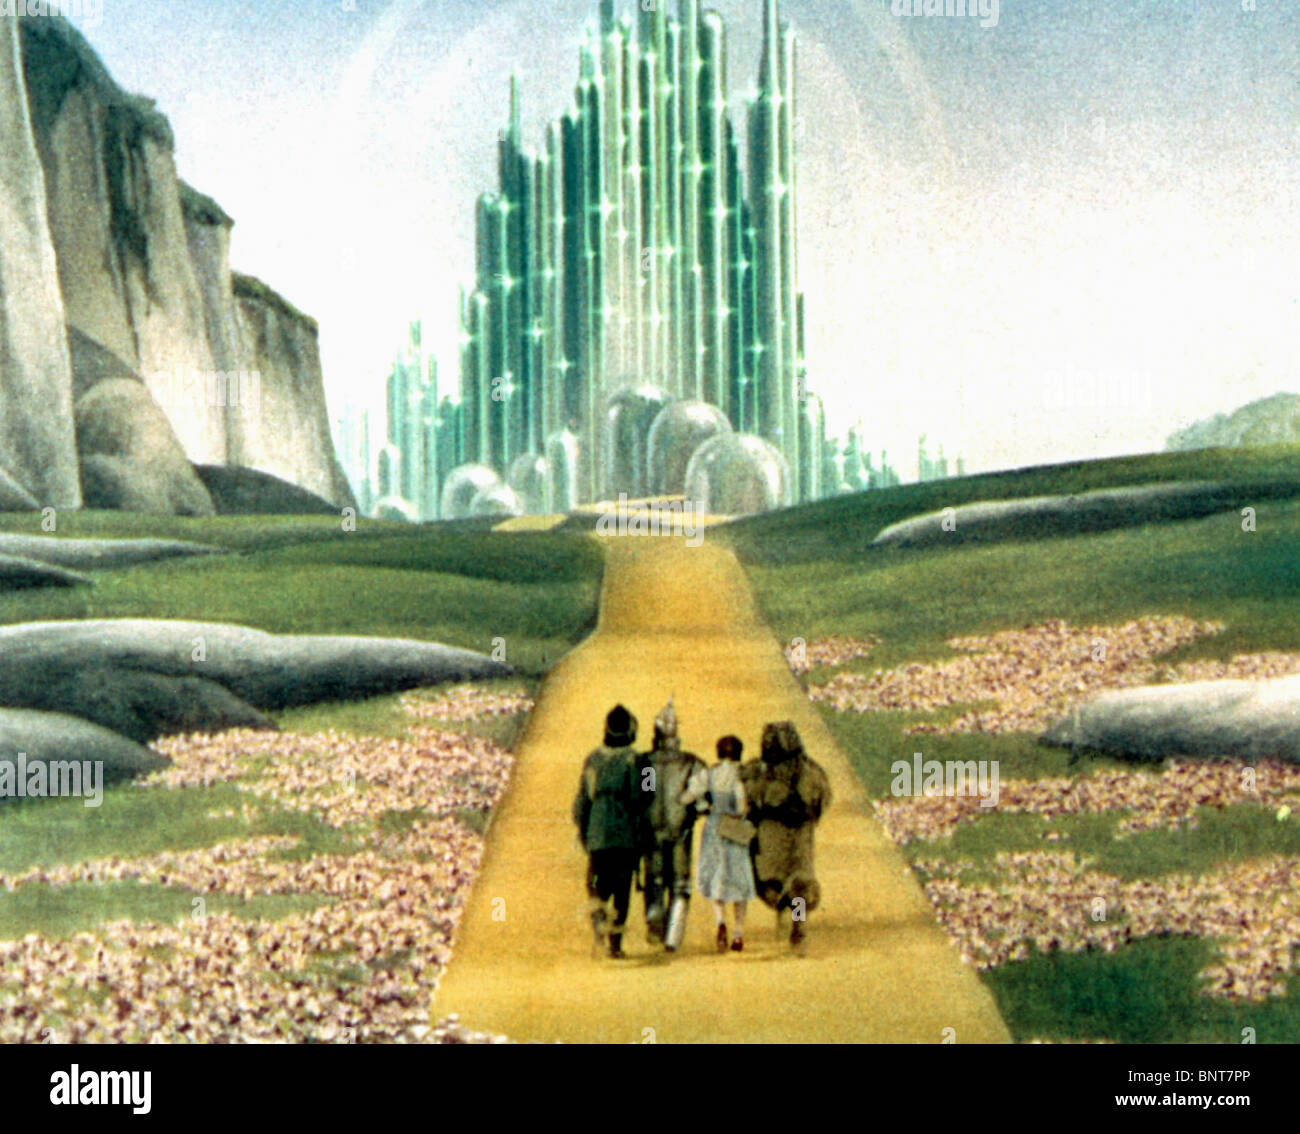 Emerald city wizard of oz pictures